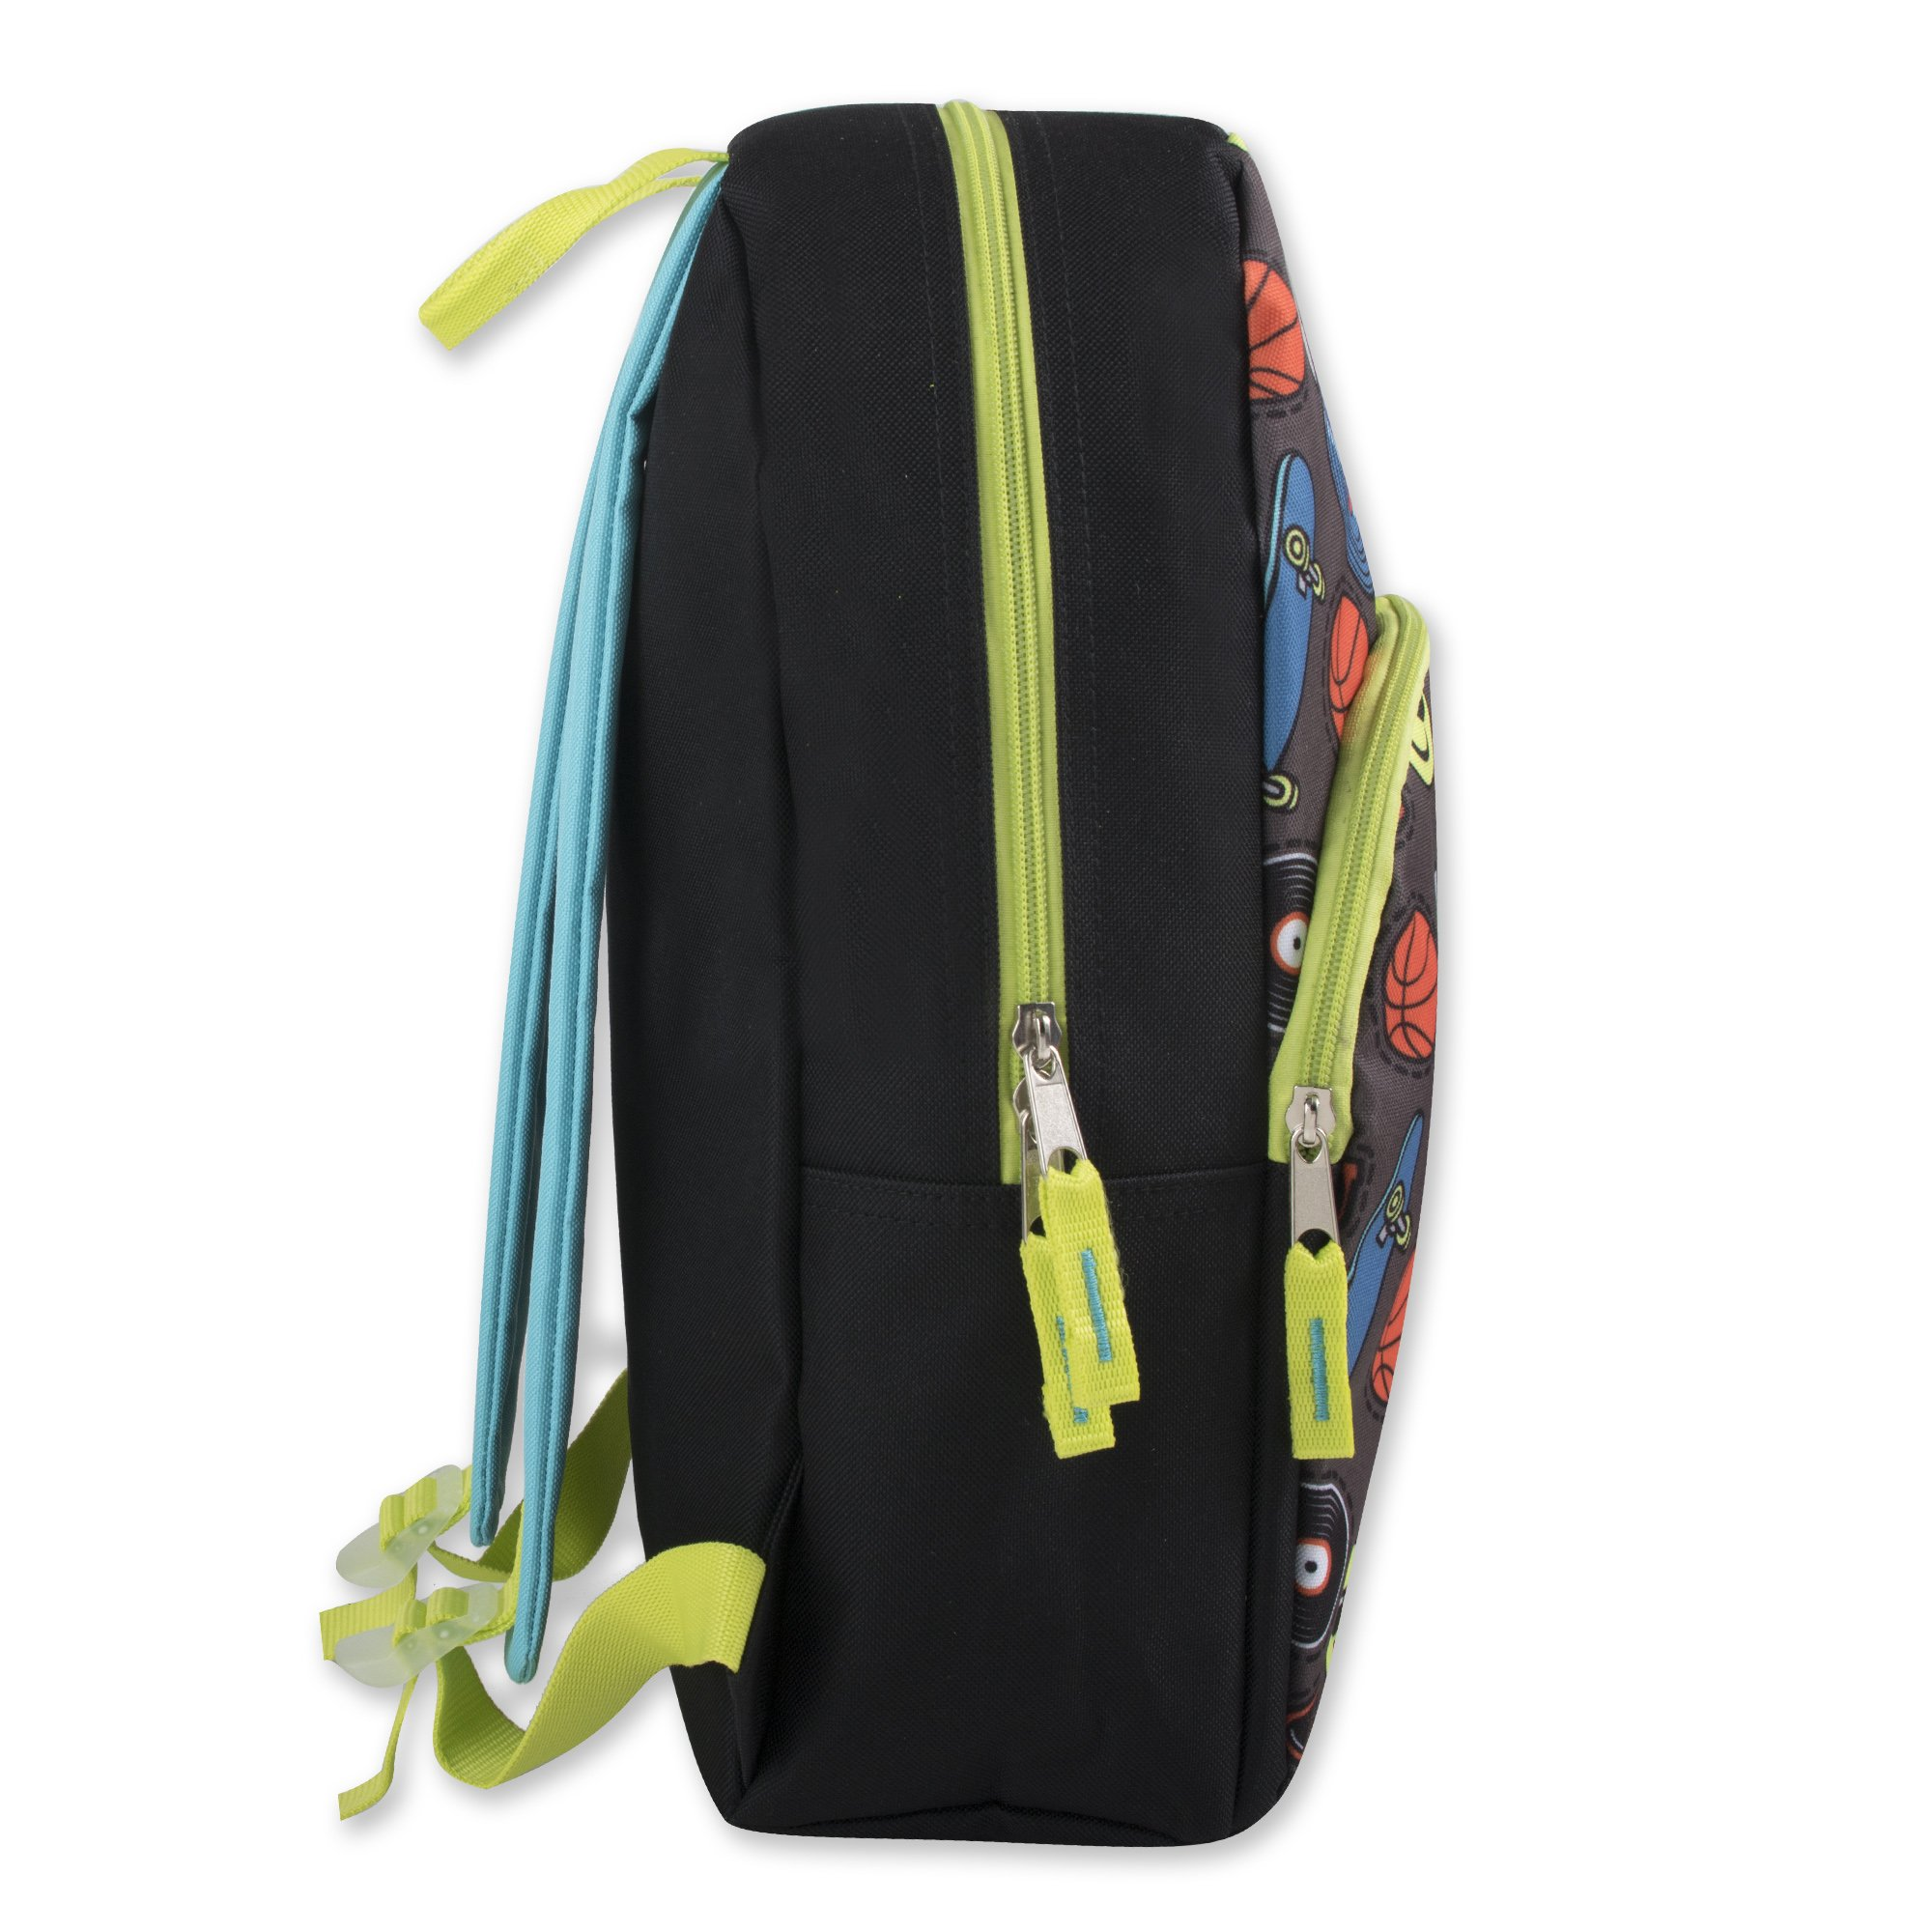 Trail maker Character Backpack (15'') with Fun Fashionable Design for Boys & Girls (Emoji Boy) by Trail maker (Image #3)